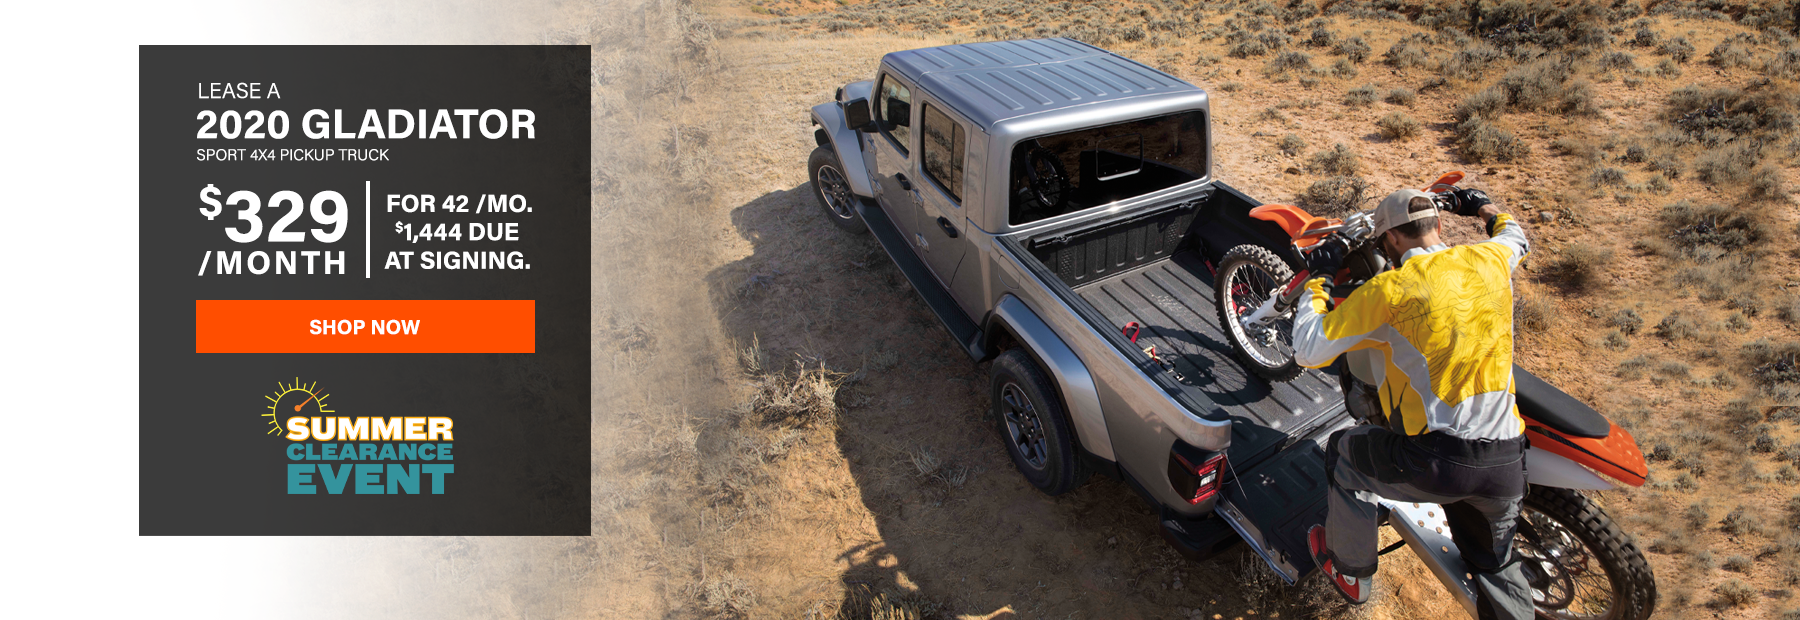 Lease a 2020 Jeep Gladiator